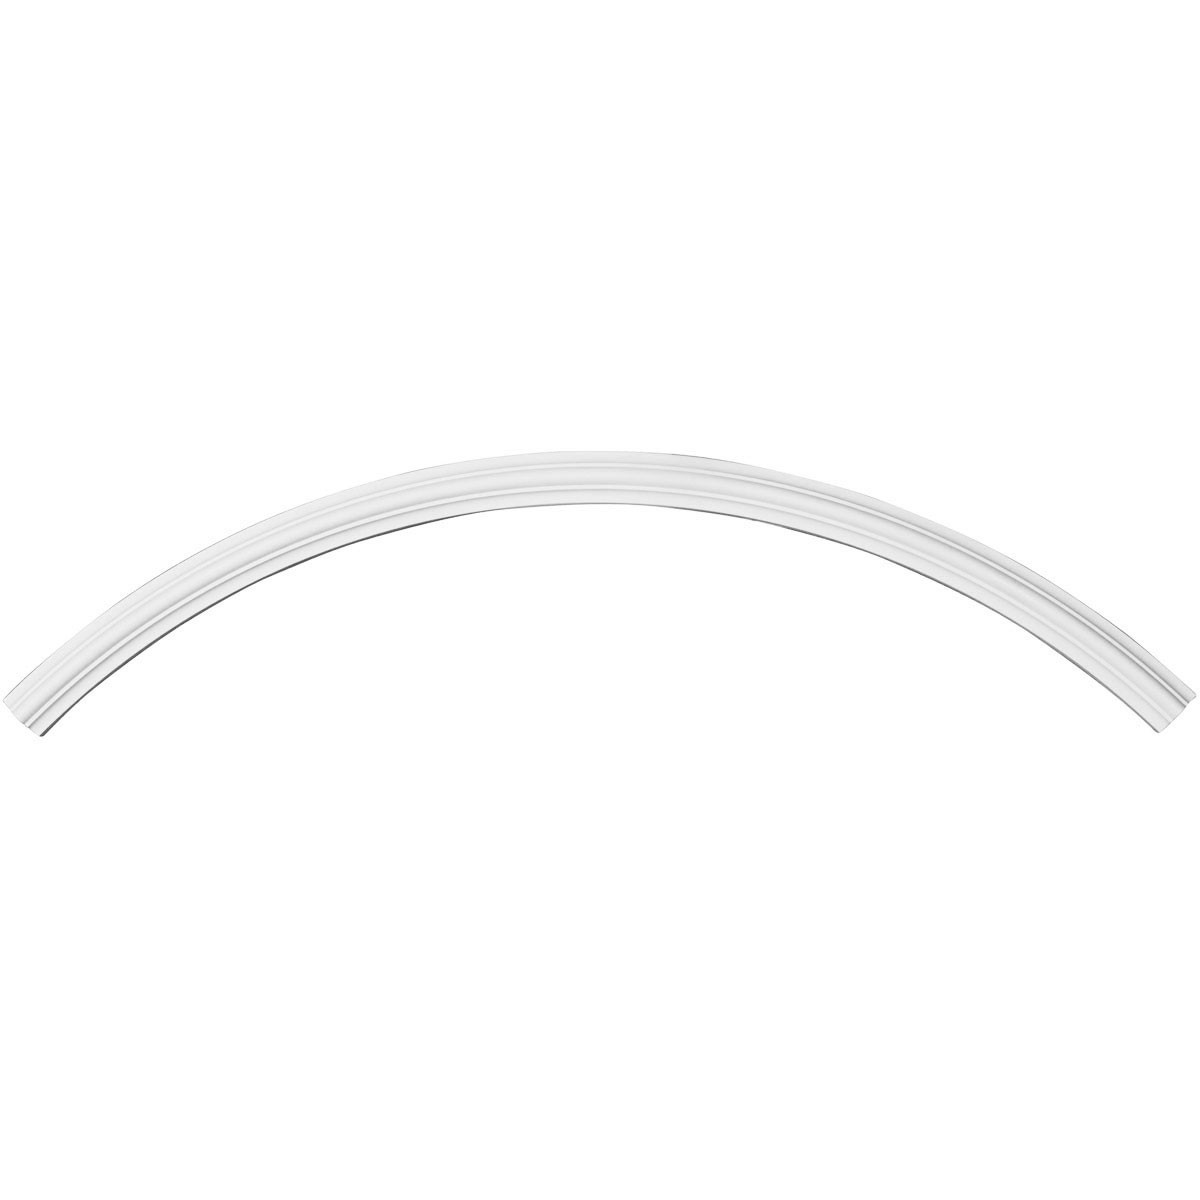 """EM-CR50TR - 50 3/8""""OD x 47 1/4""""ID x 1 5/8""""W x 3/4""""P Traditional Ceiling Ring (1/4 of complete circle)"""